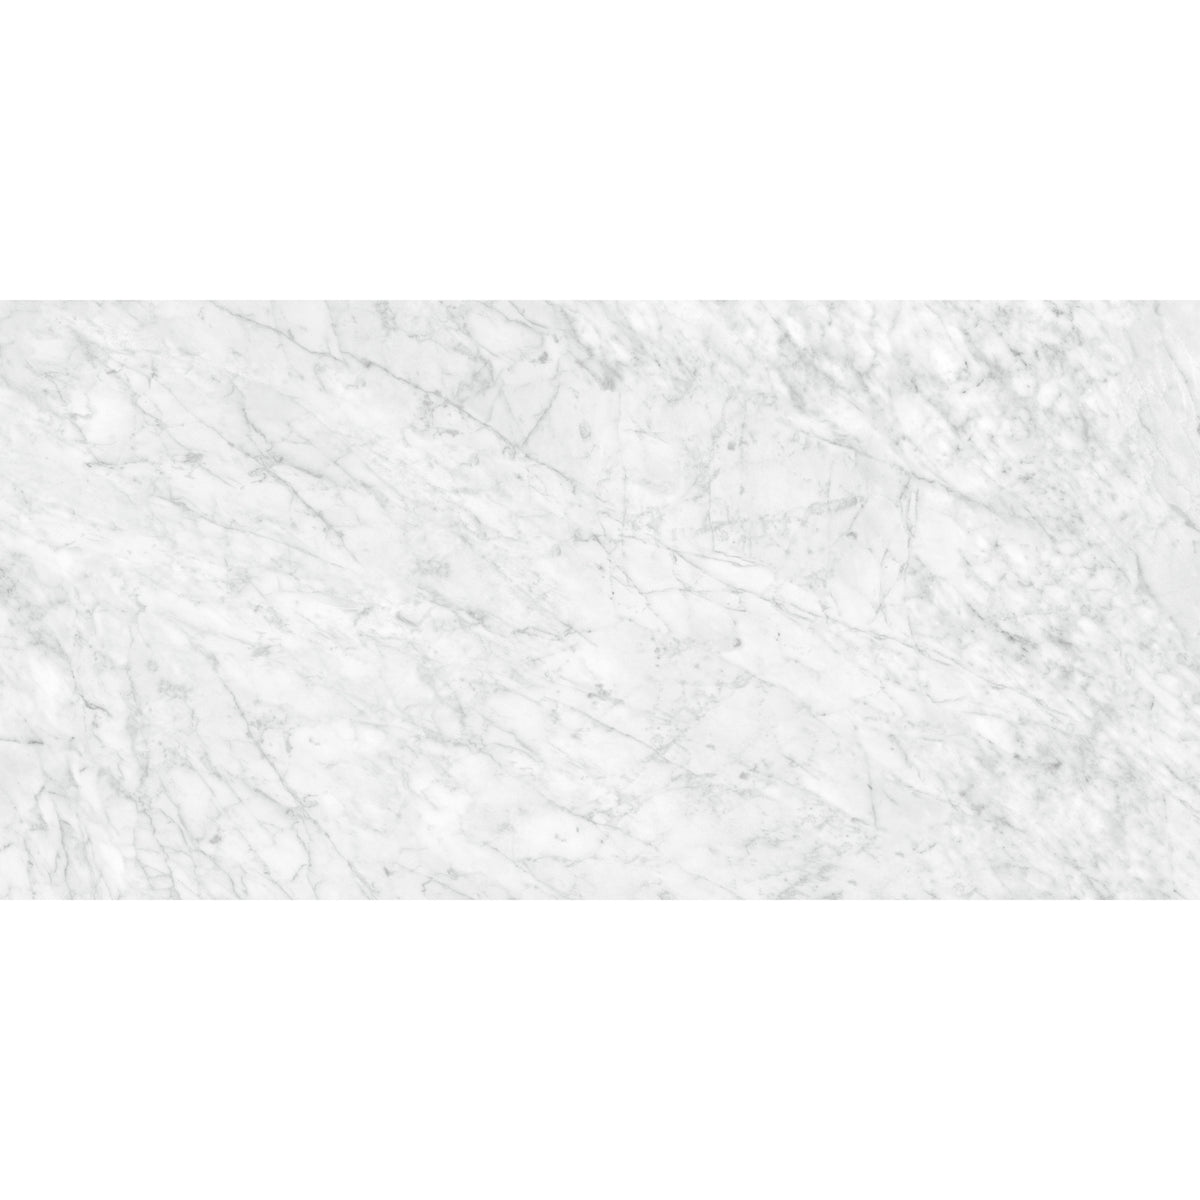 Anatolia - La Marca Glazed Porcelain 24 in. x 48 in. Honed Tile - Carrara Gioia